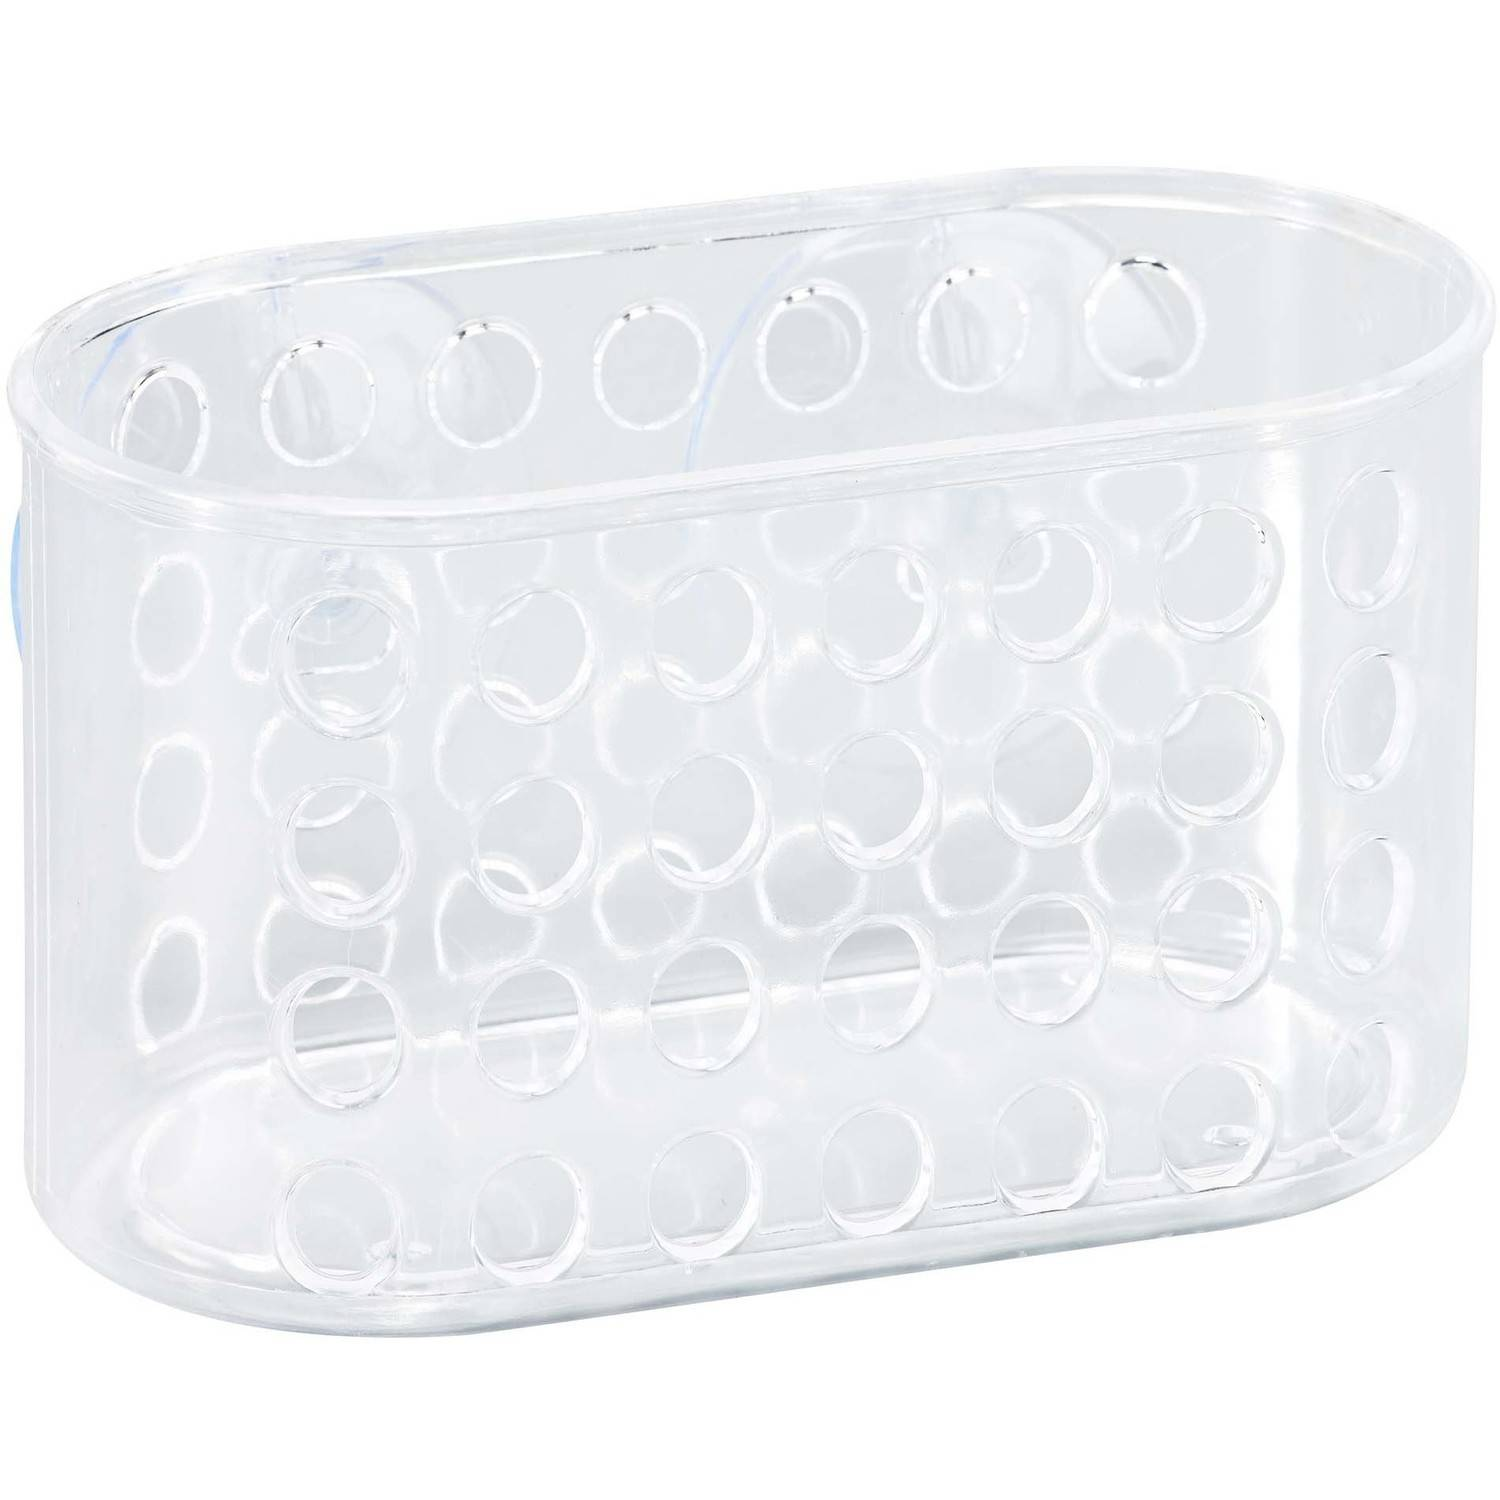 Bath Bliss Clear Suction Bathroom Organizer by Kennedy International, INC.